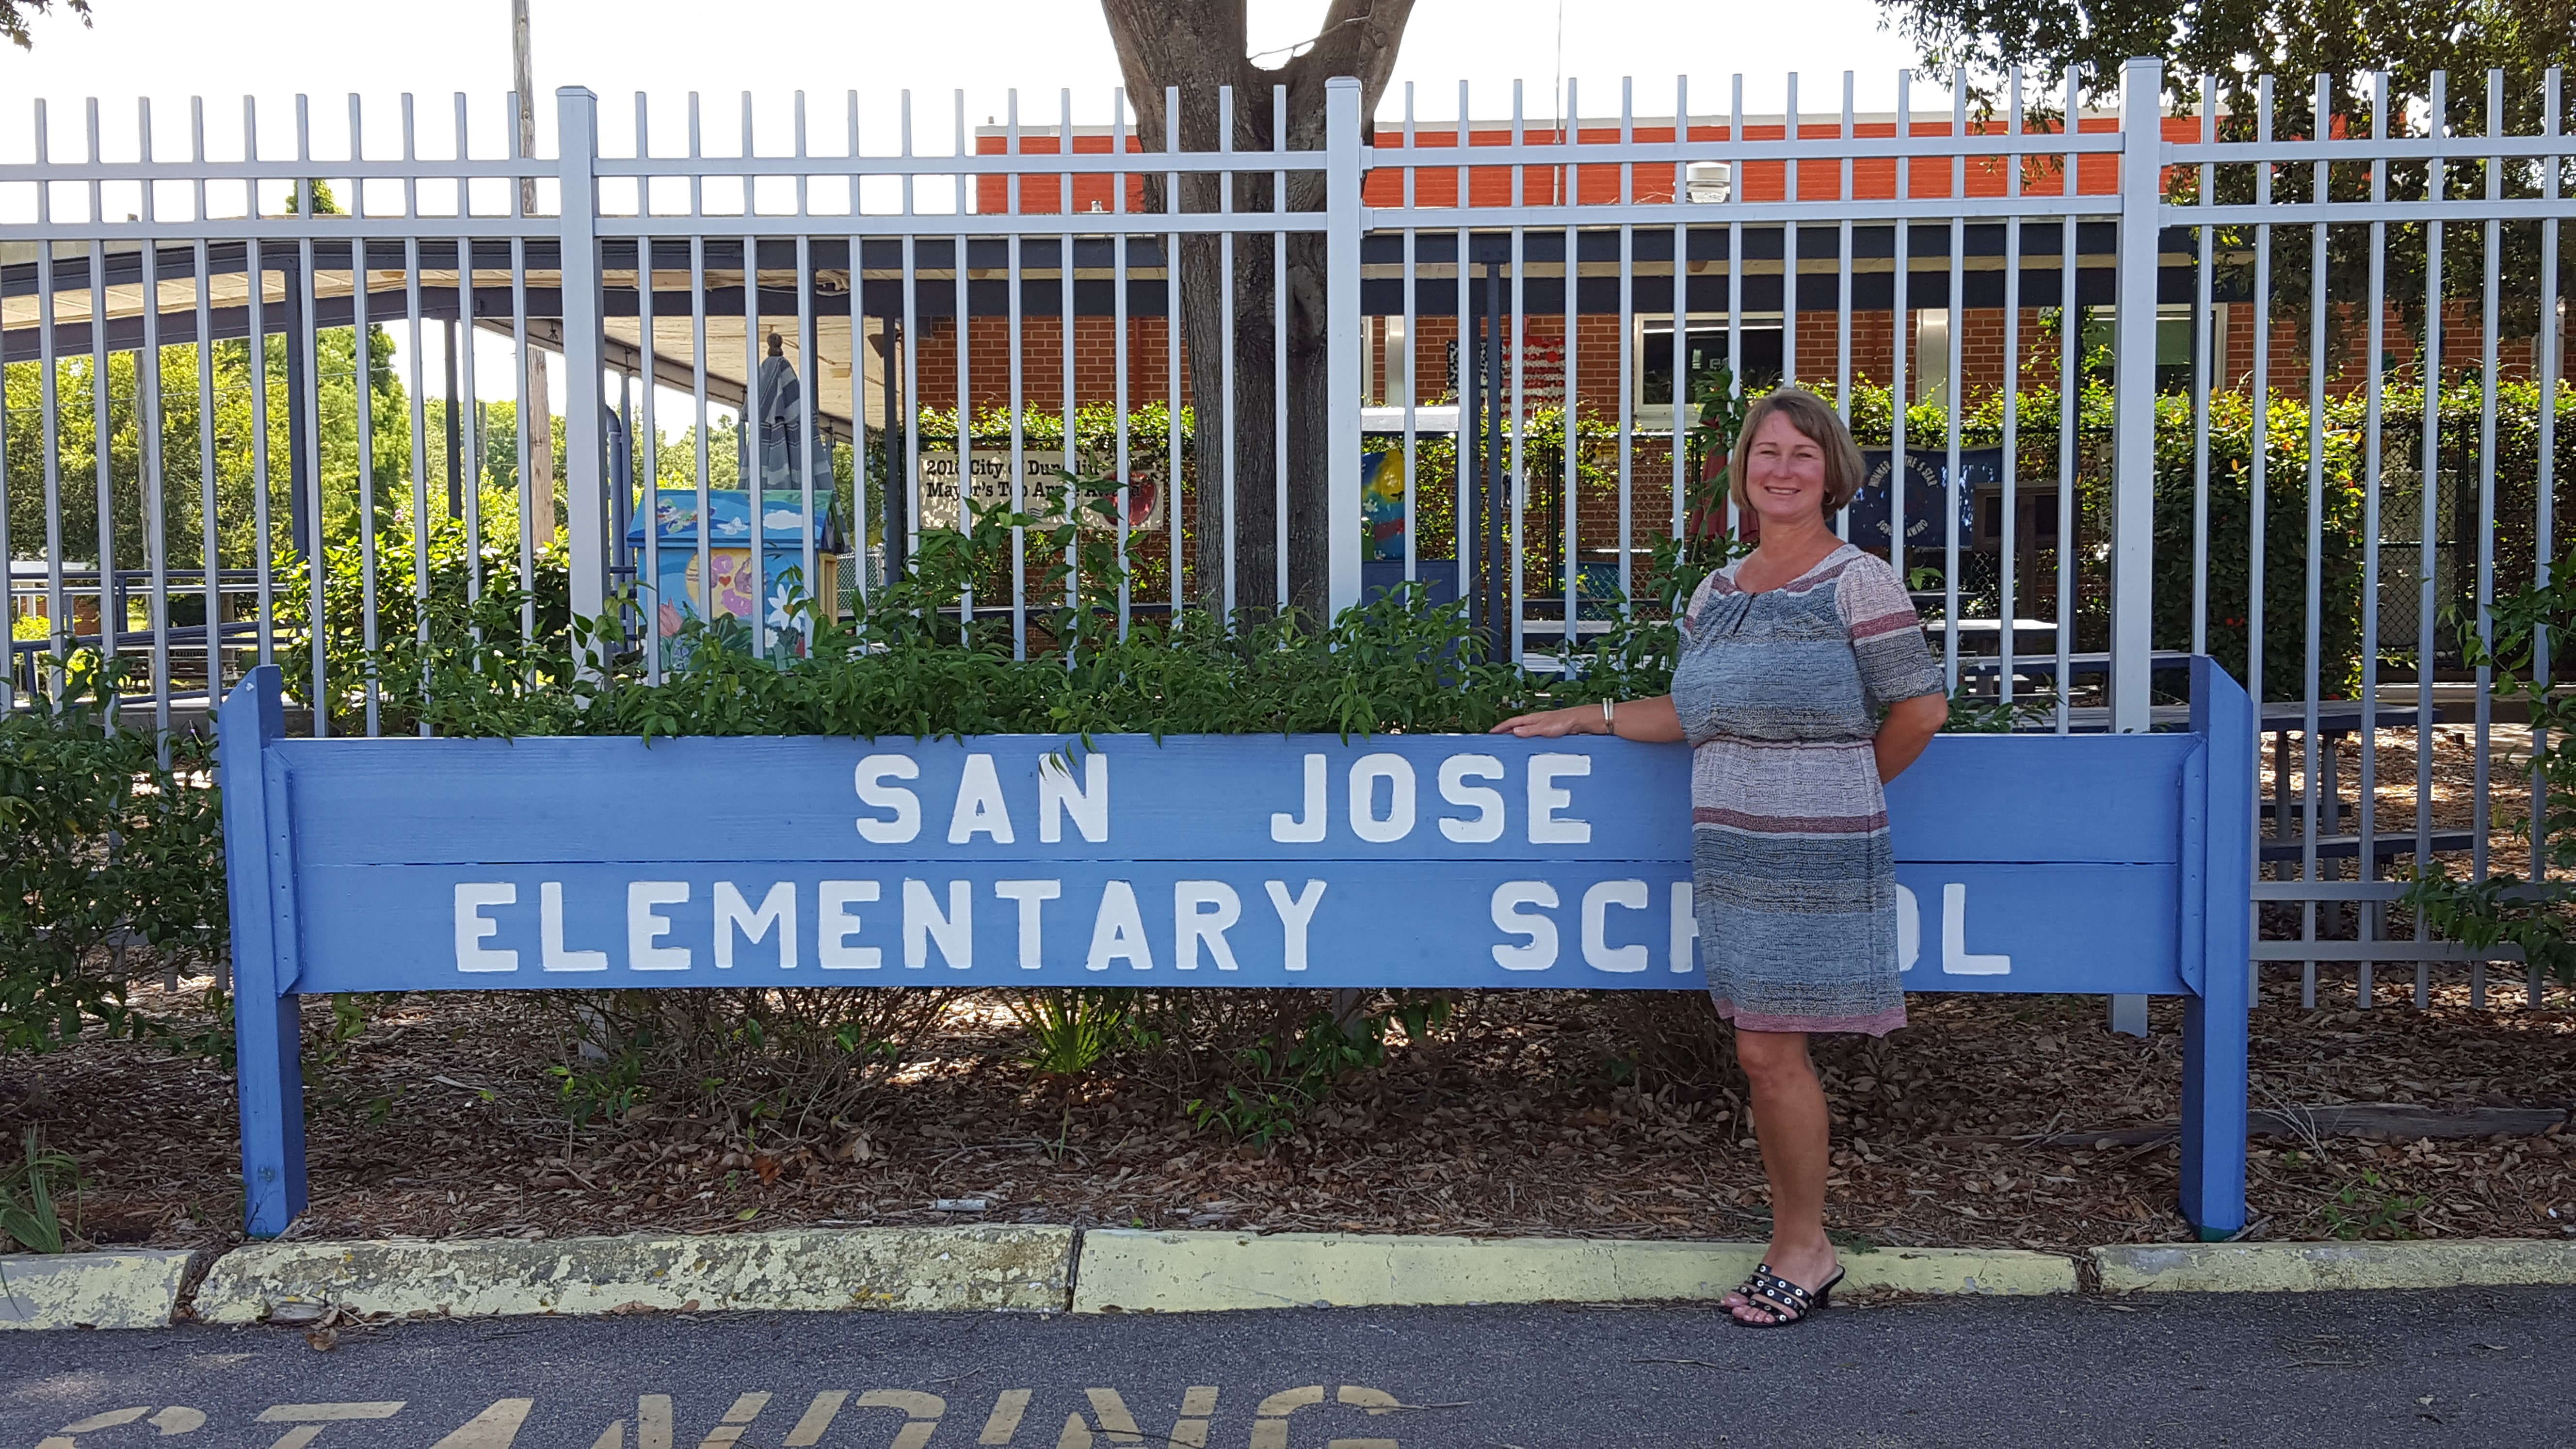 Lisa Brown, Principal of San Jose Elementary